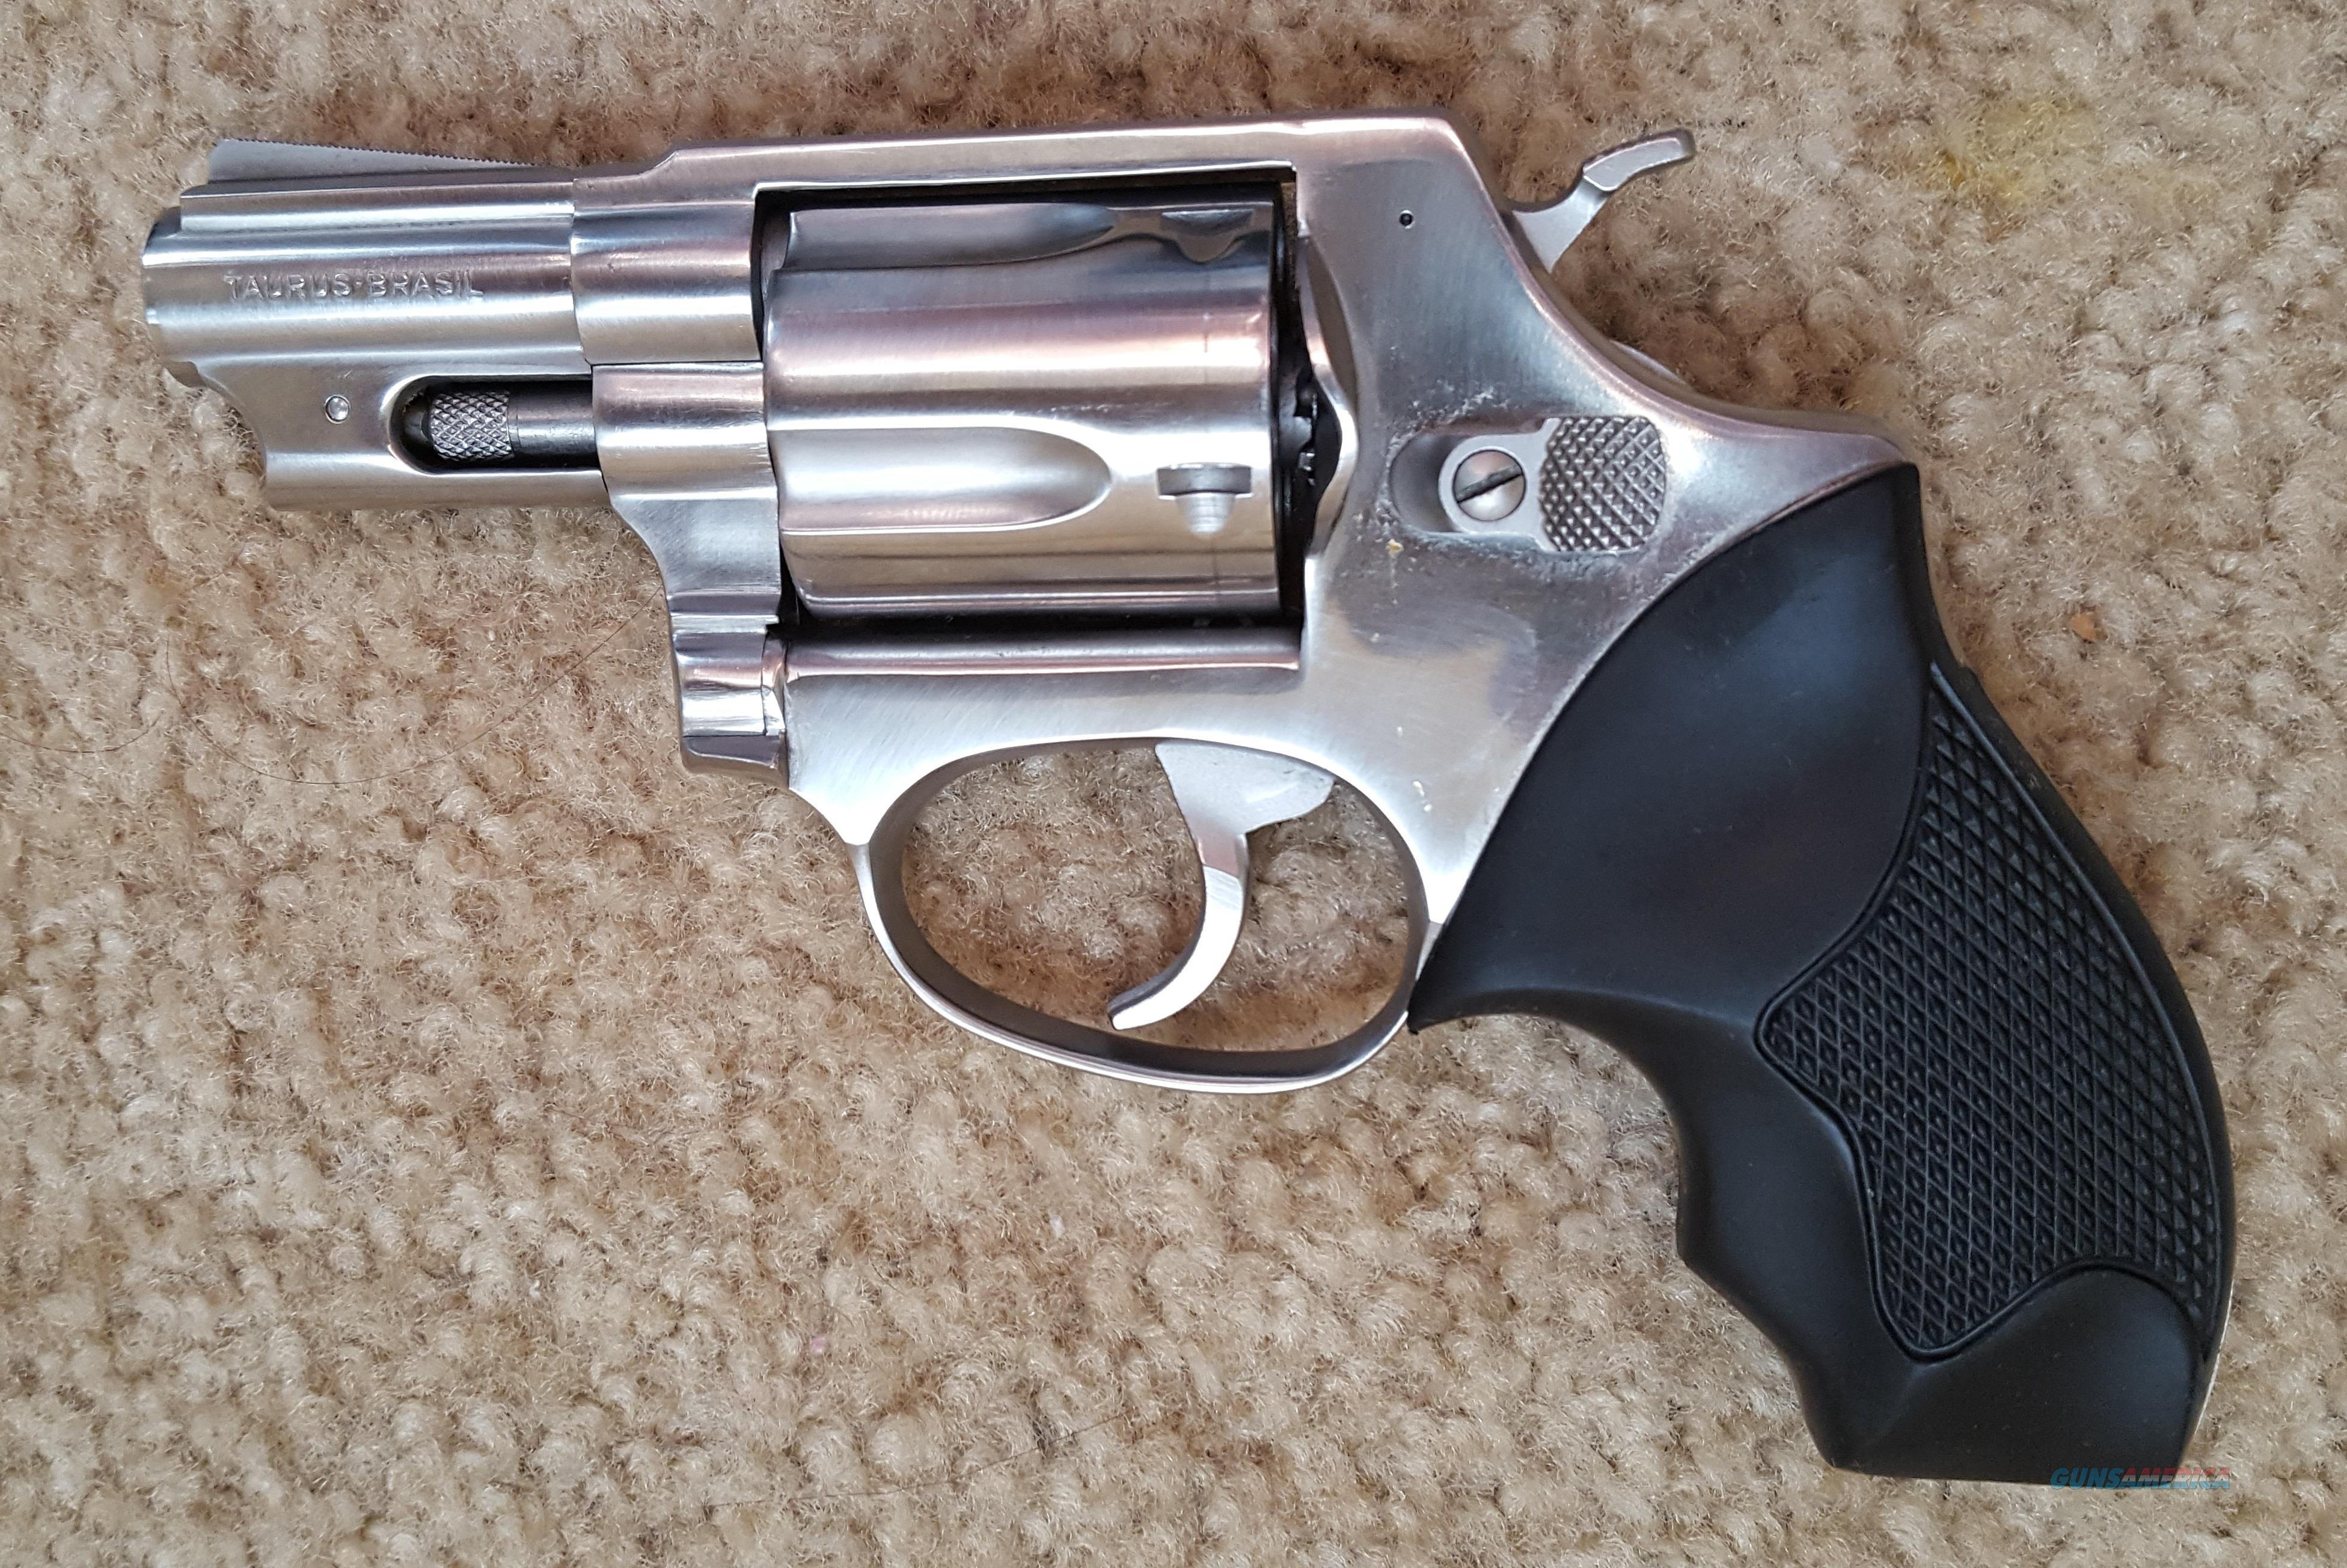 "MY TAURUS 85IS REVOLVER STAINLESS 2"" BARREL, 5 ROUNDS  Guns > Pistols > Taurus Pistols/Revolvers > Revolvers"